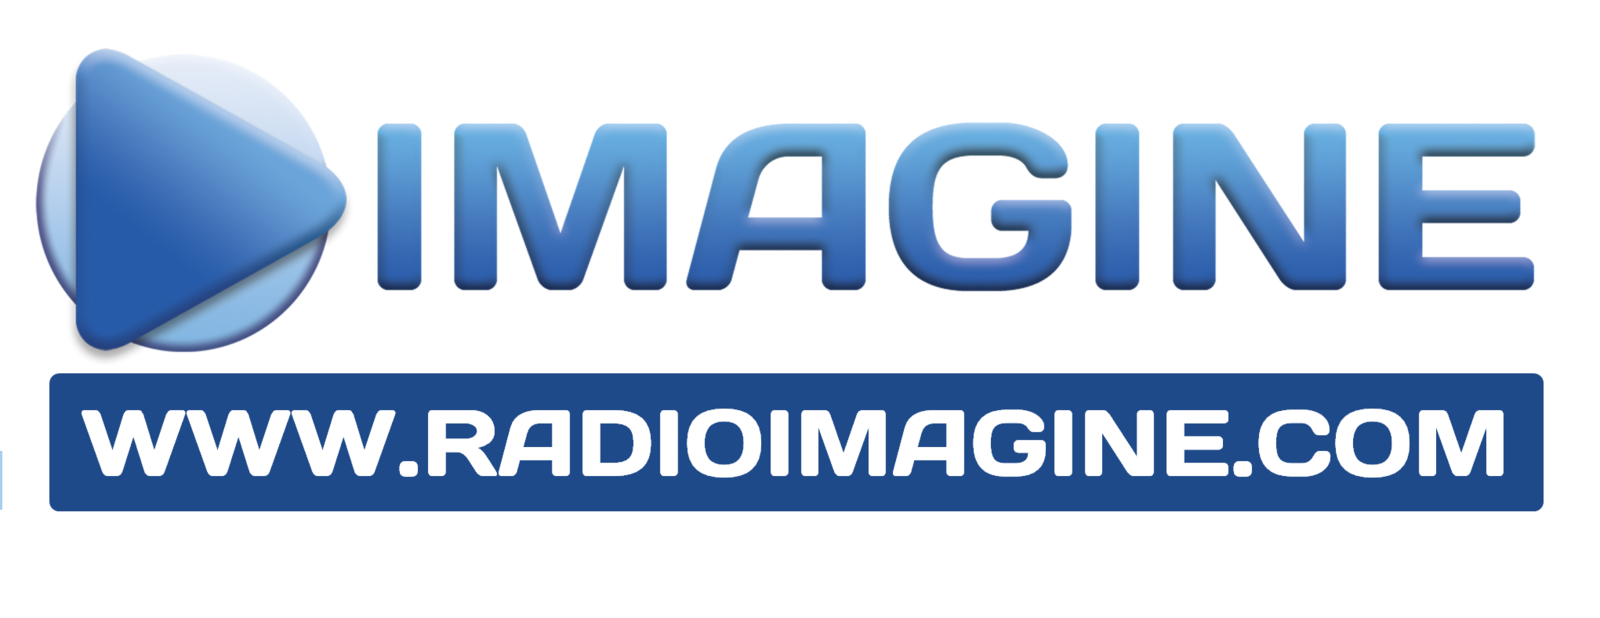 Radio Imagine - Animation : Le 14-17 de lundi 11 avril 2016